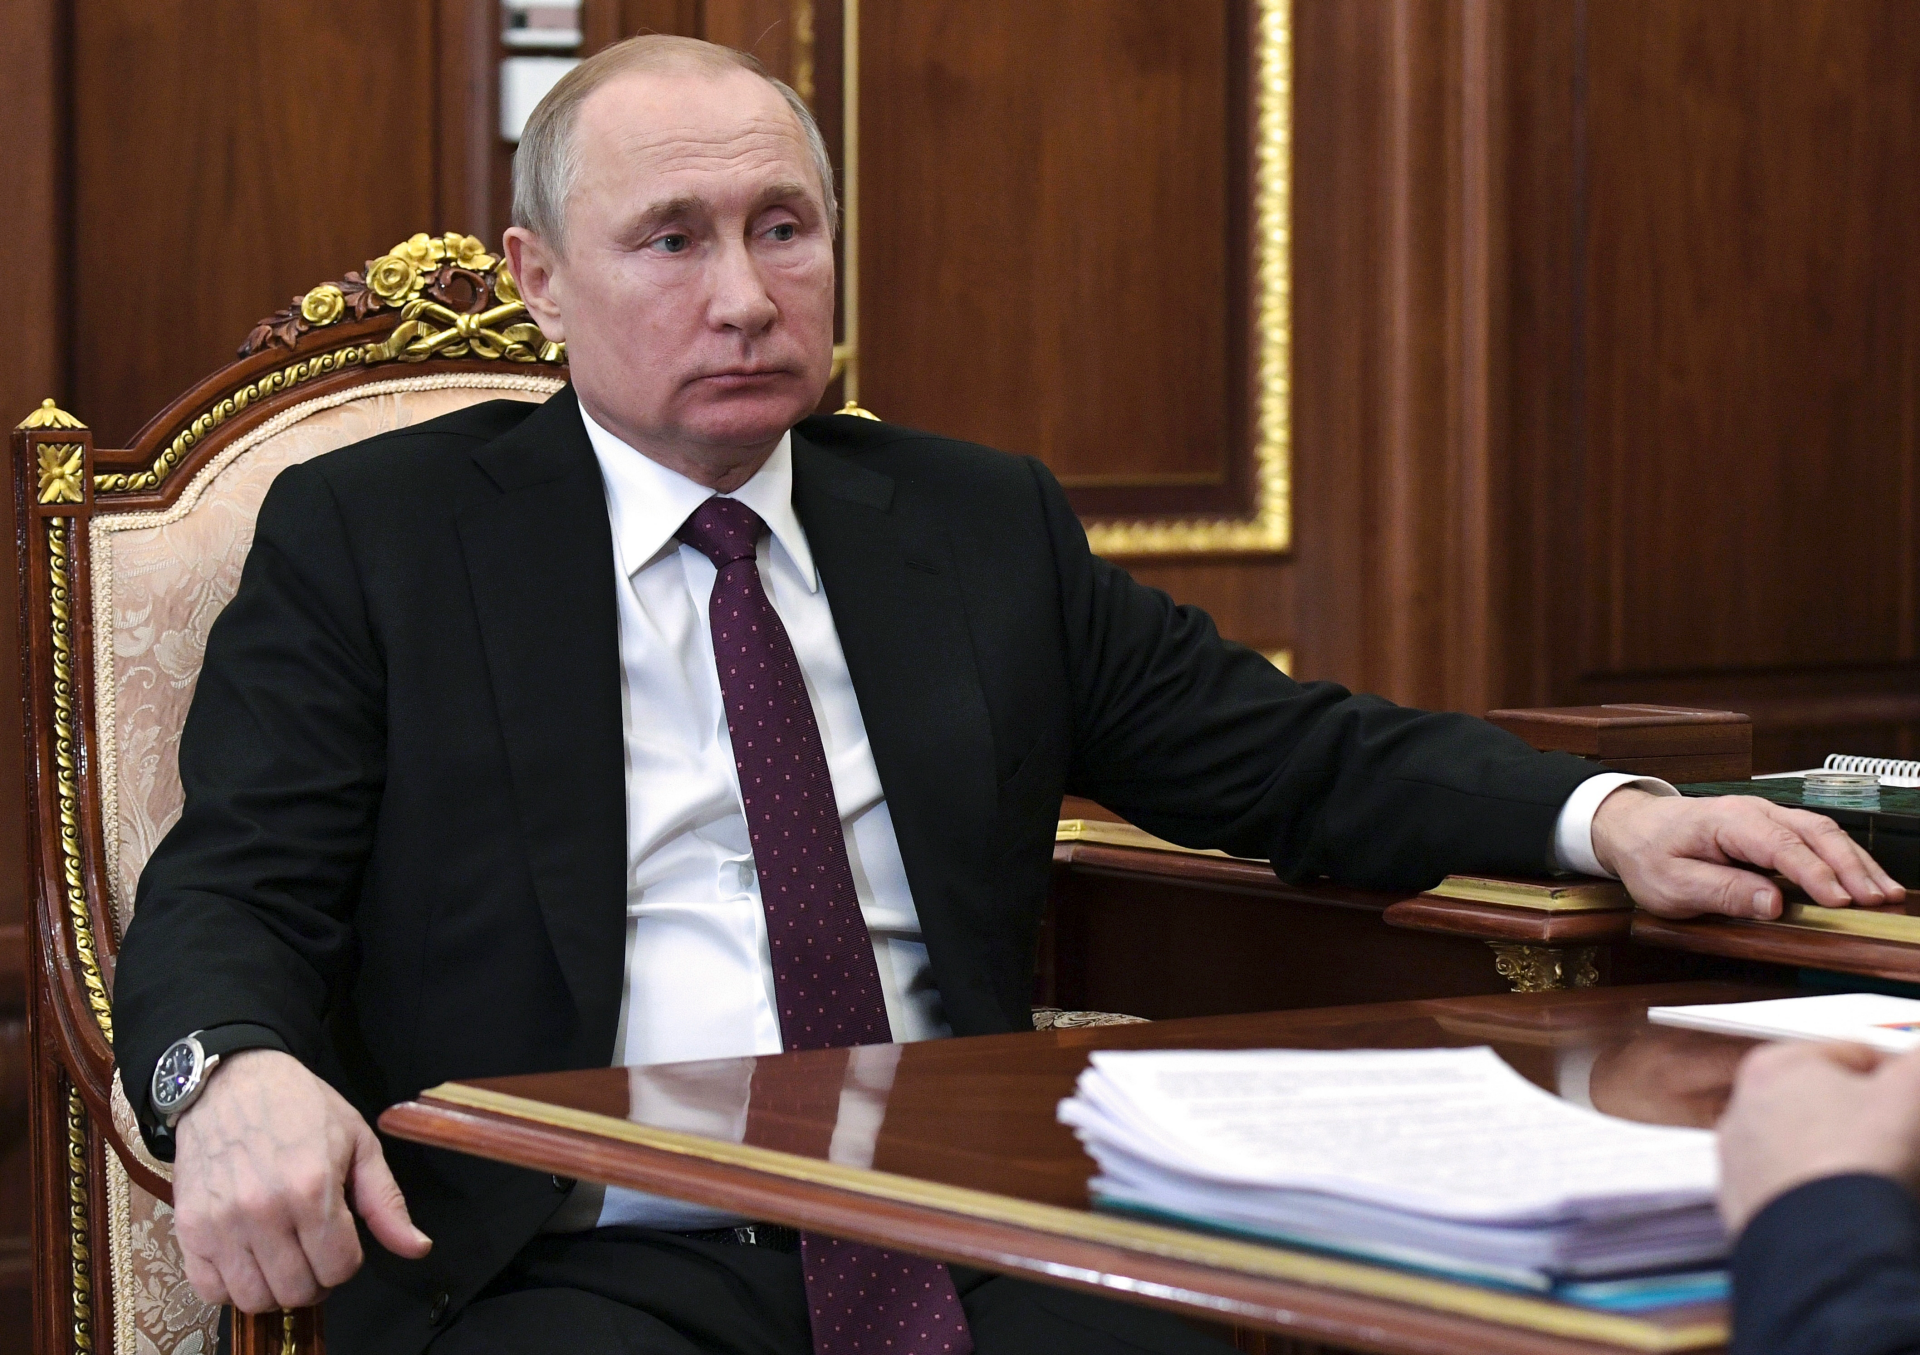 Kremlin: Russia's political system a good model for others